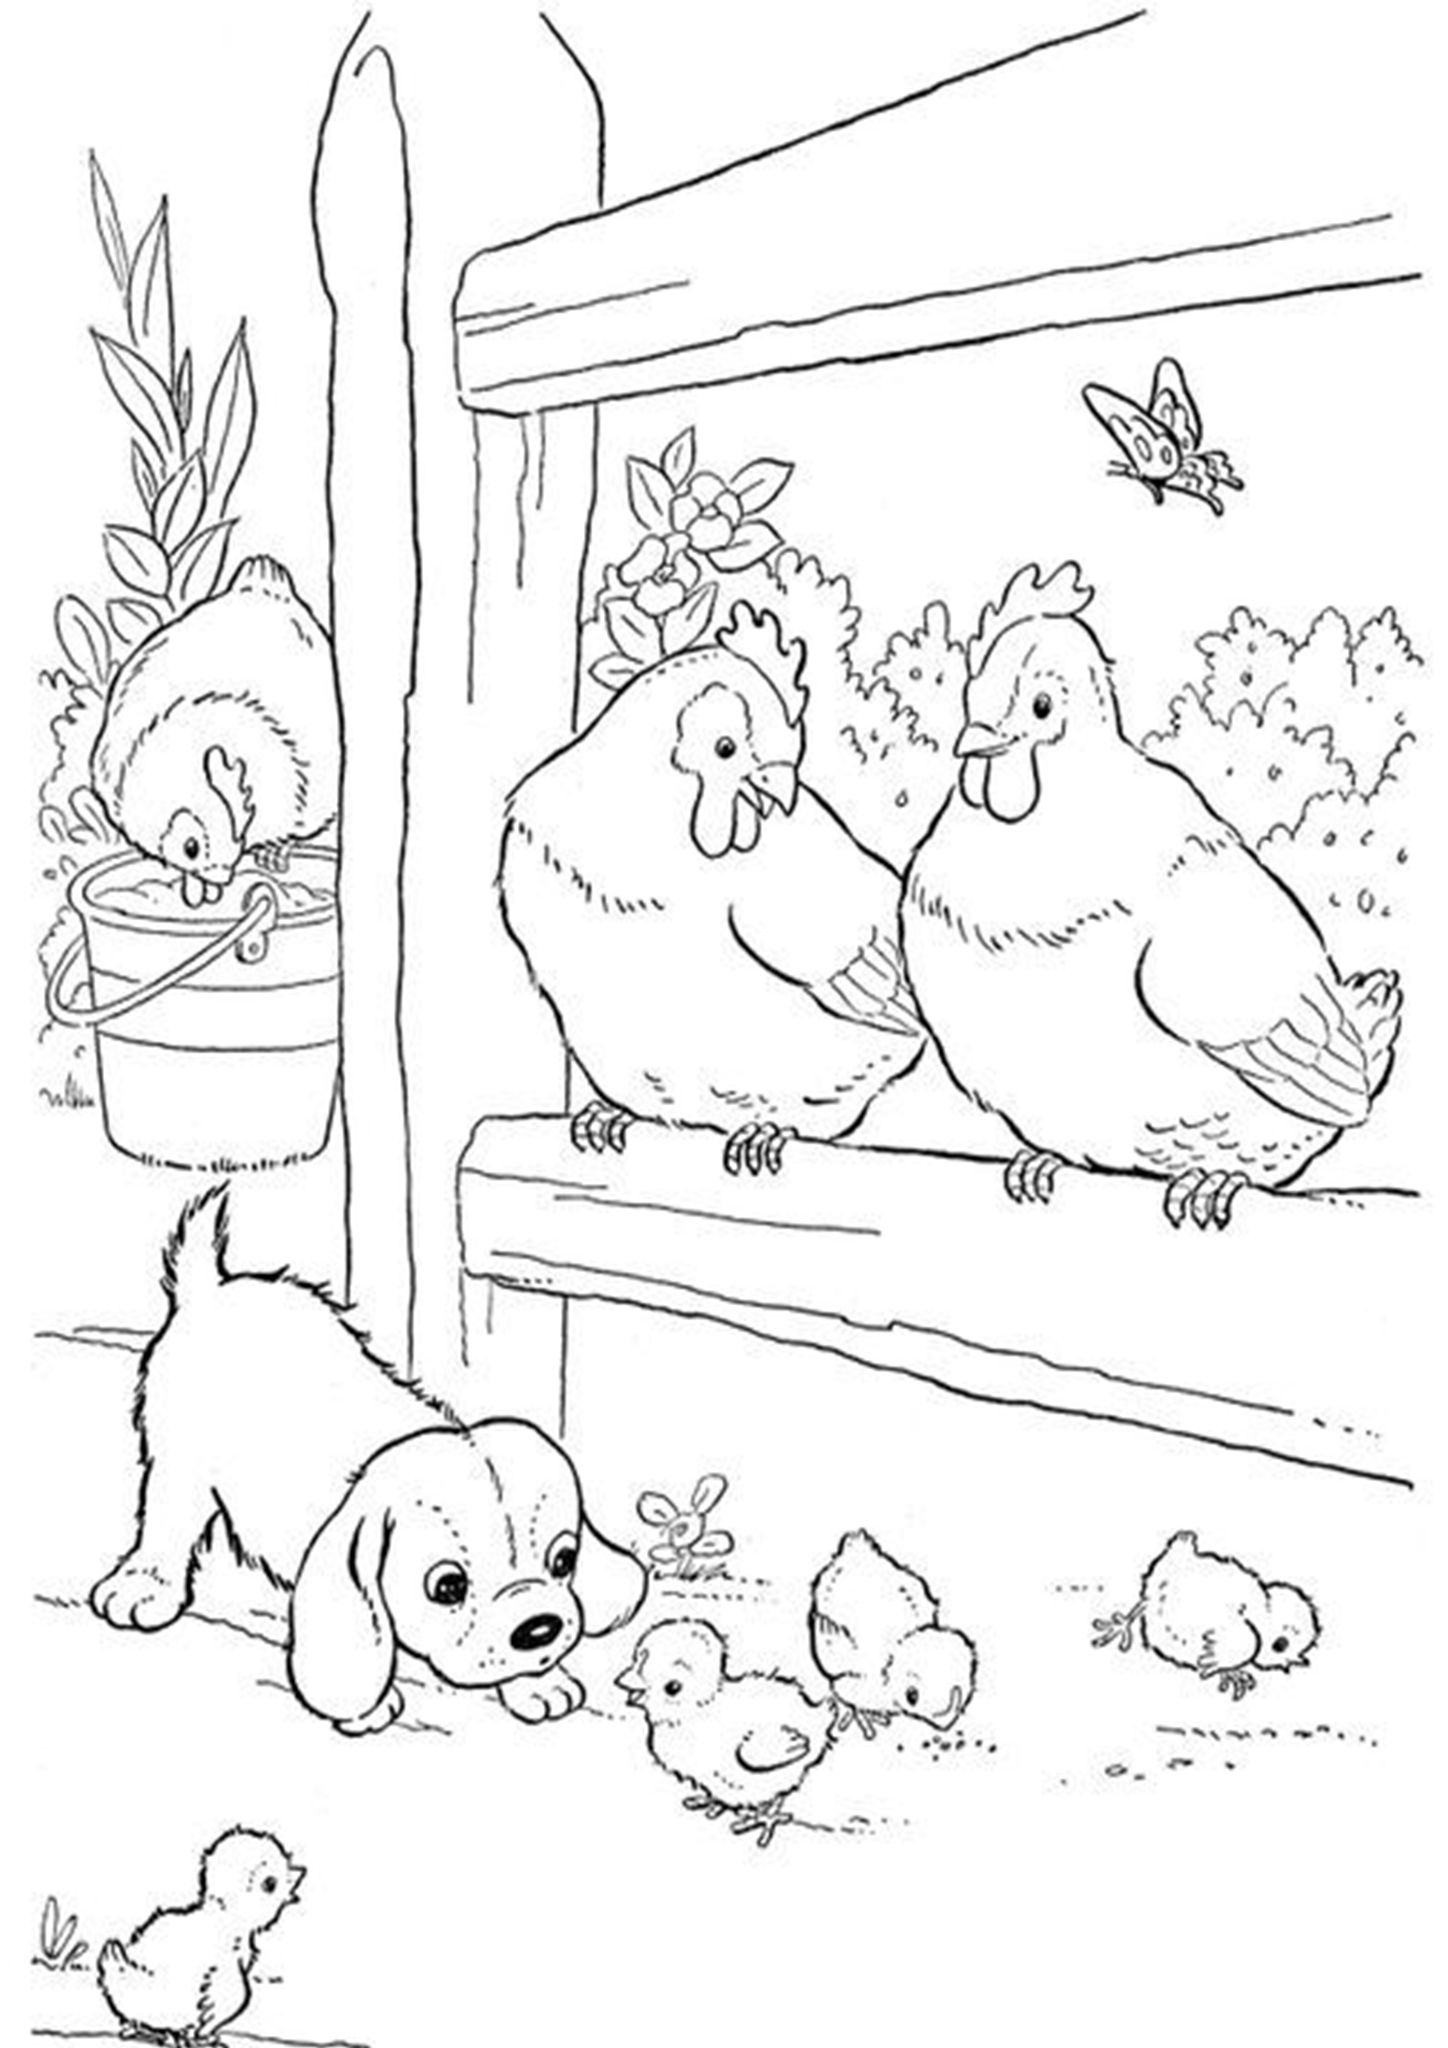 Free Easy To Print Chicken Coloring Pages Farm Animal Coloring Pages Farm Coloring Pages Coloring Pages